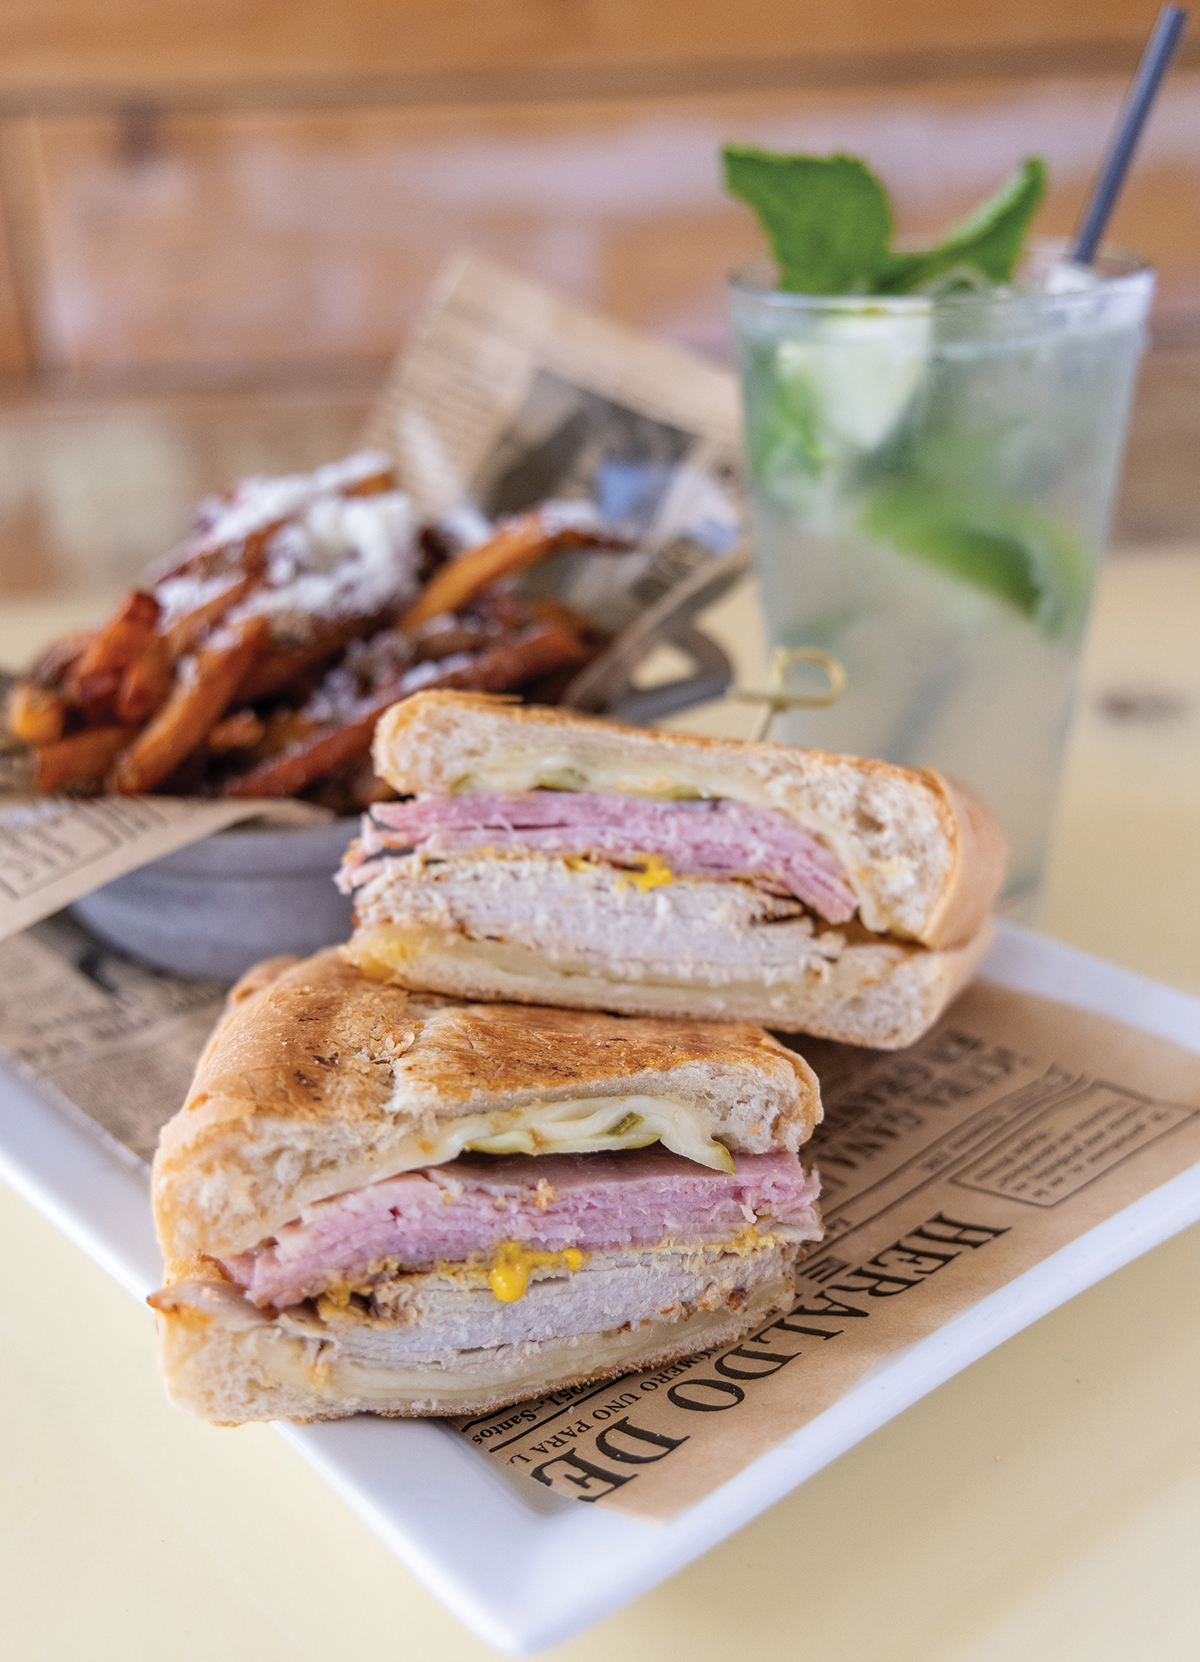 Mooresville, Nc February 10th 2021 Havana 33 Cuban Eggrolls With Honey Mustard Dip Four Cheese And Gravy Fries, Smothered In Gravy, Cheese Sauce, And Bacon Sandwich Cubano (classic Cuban Sandwich) The Ropa Vieja: Shredded Beef, Onions, Peppers, And